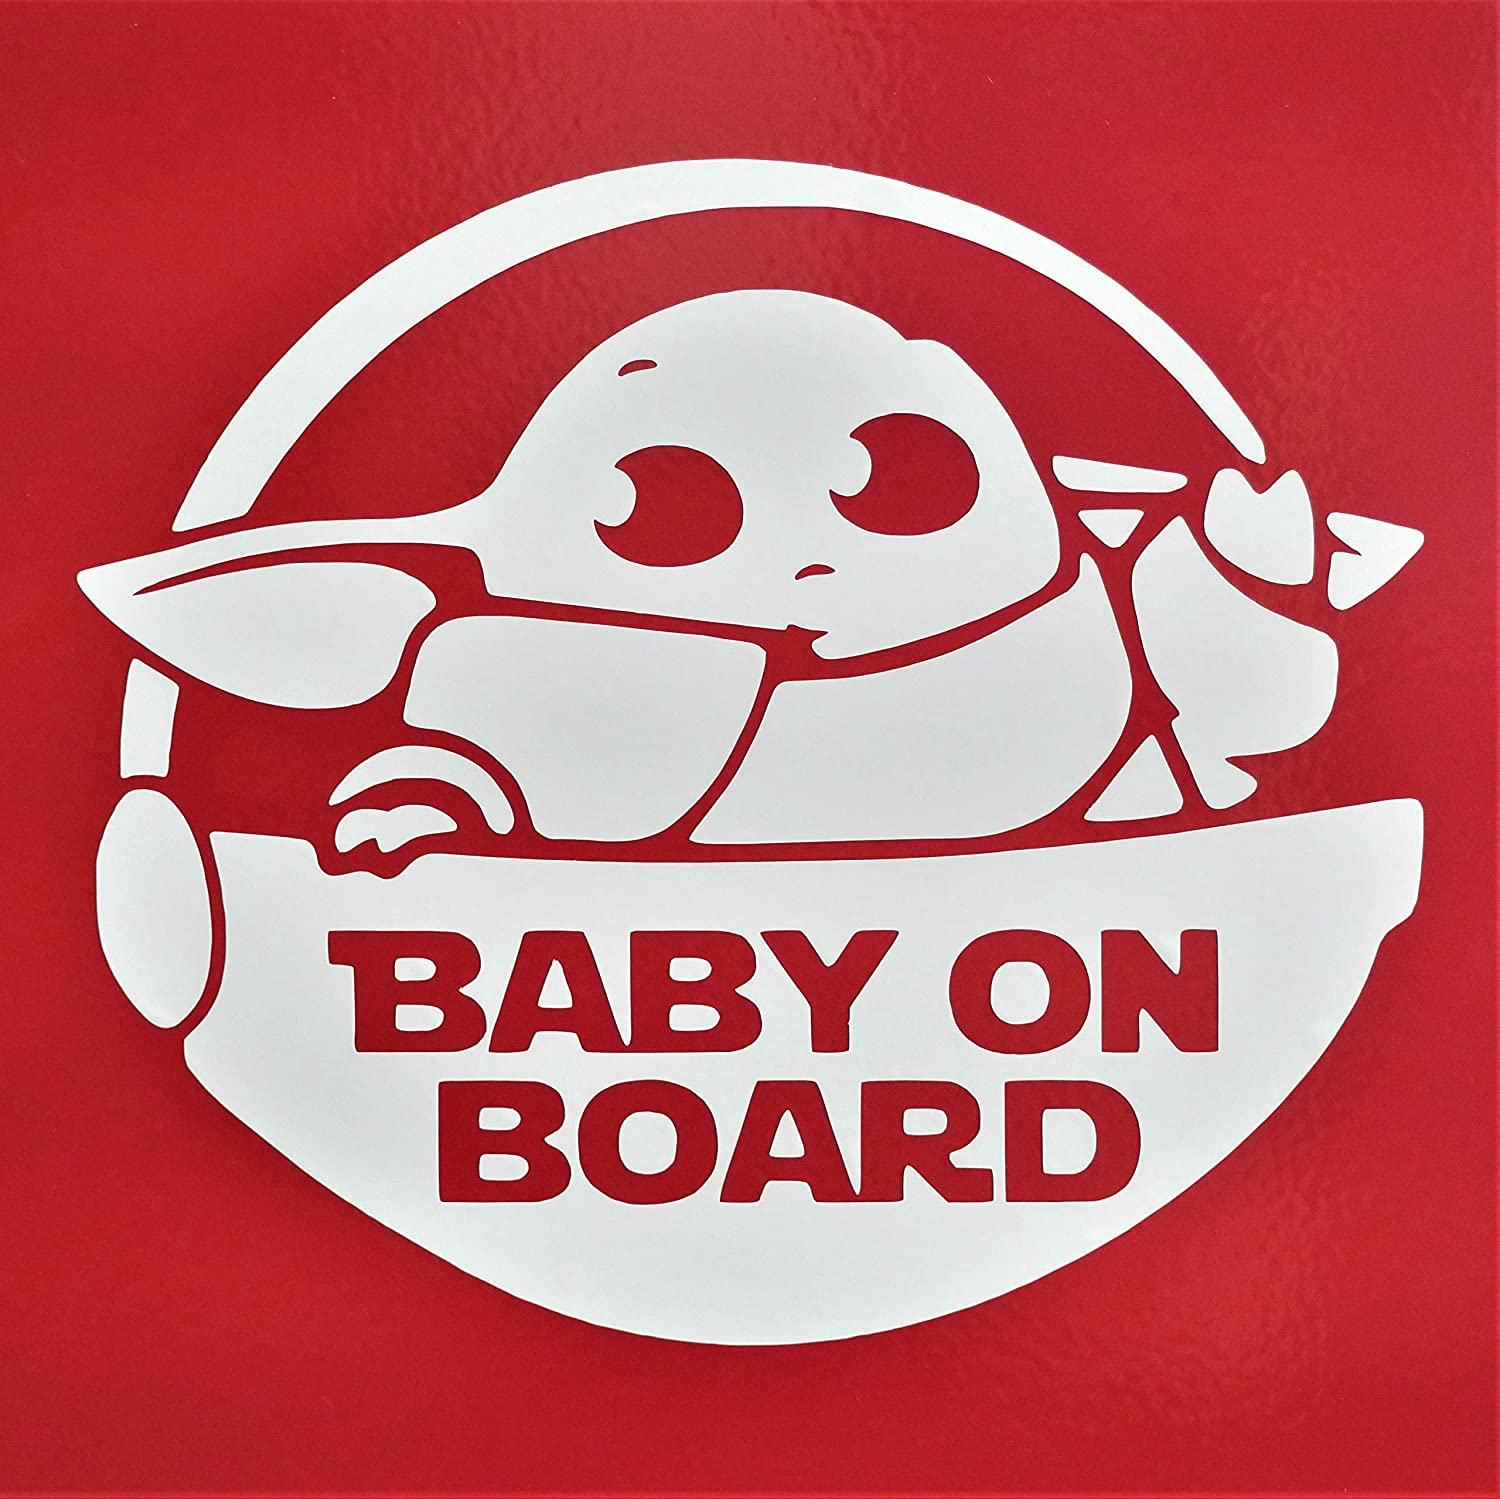 Baby On Board The Child Bumper Sticker Window Vinyl Decal 7 in Tall